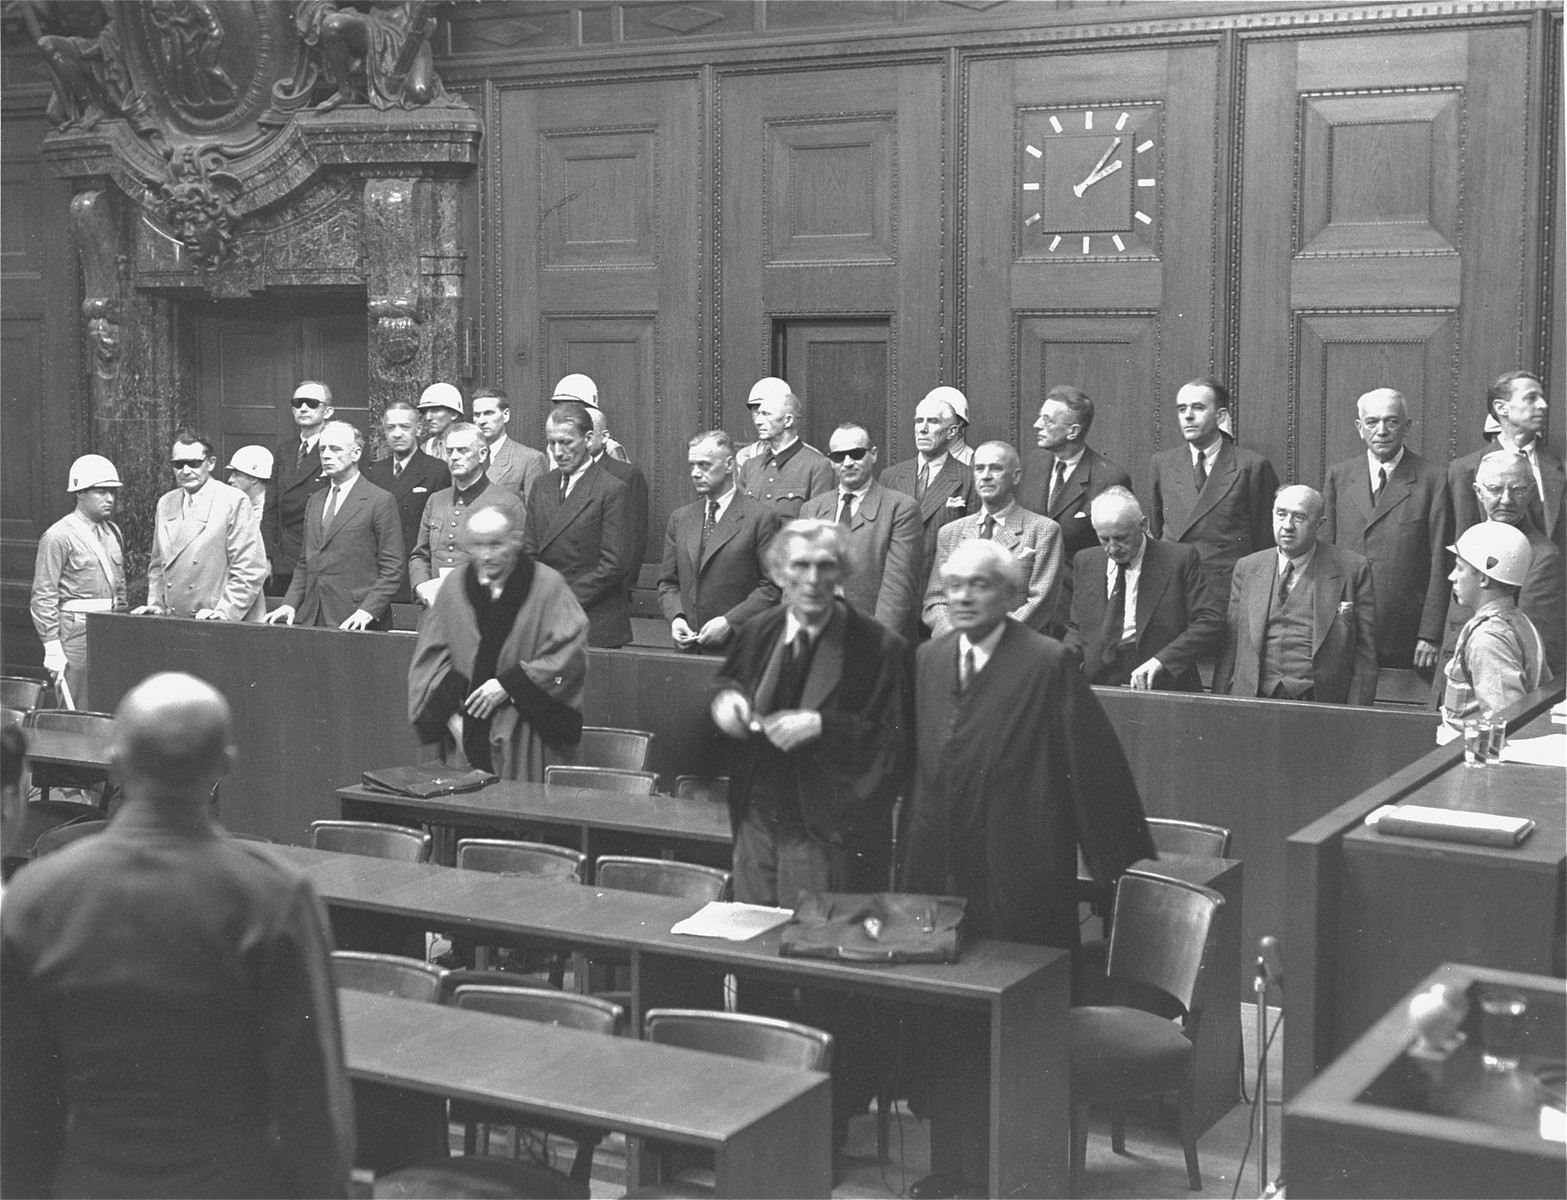 The defendants rise as the judges enter the courtroom at the International Military Tribunal war crimes trial at Nuremberg.